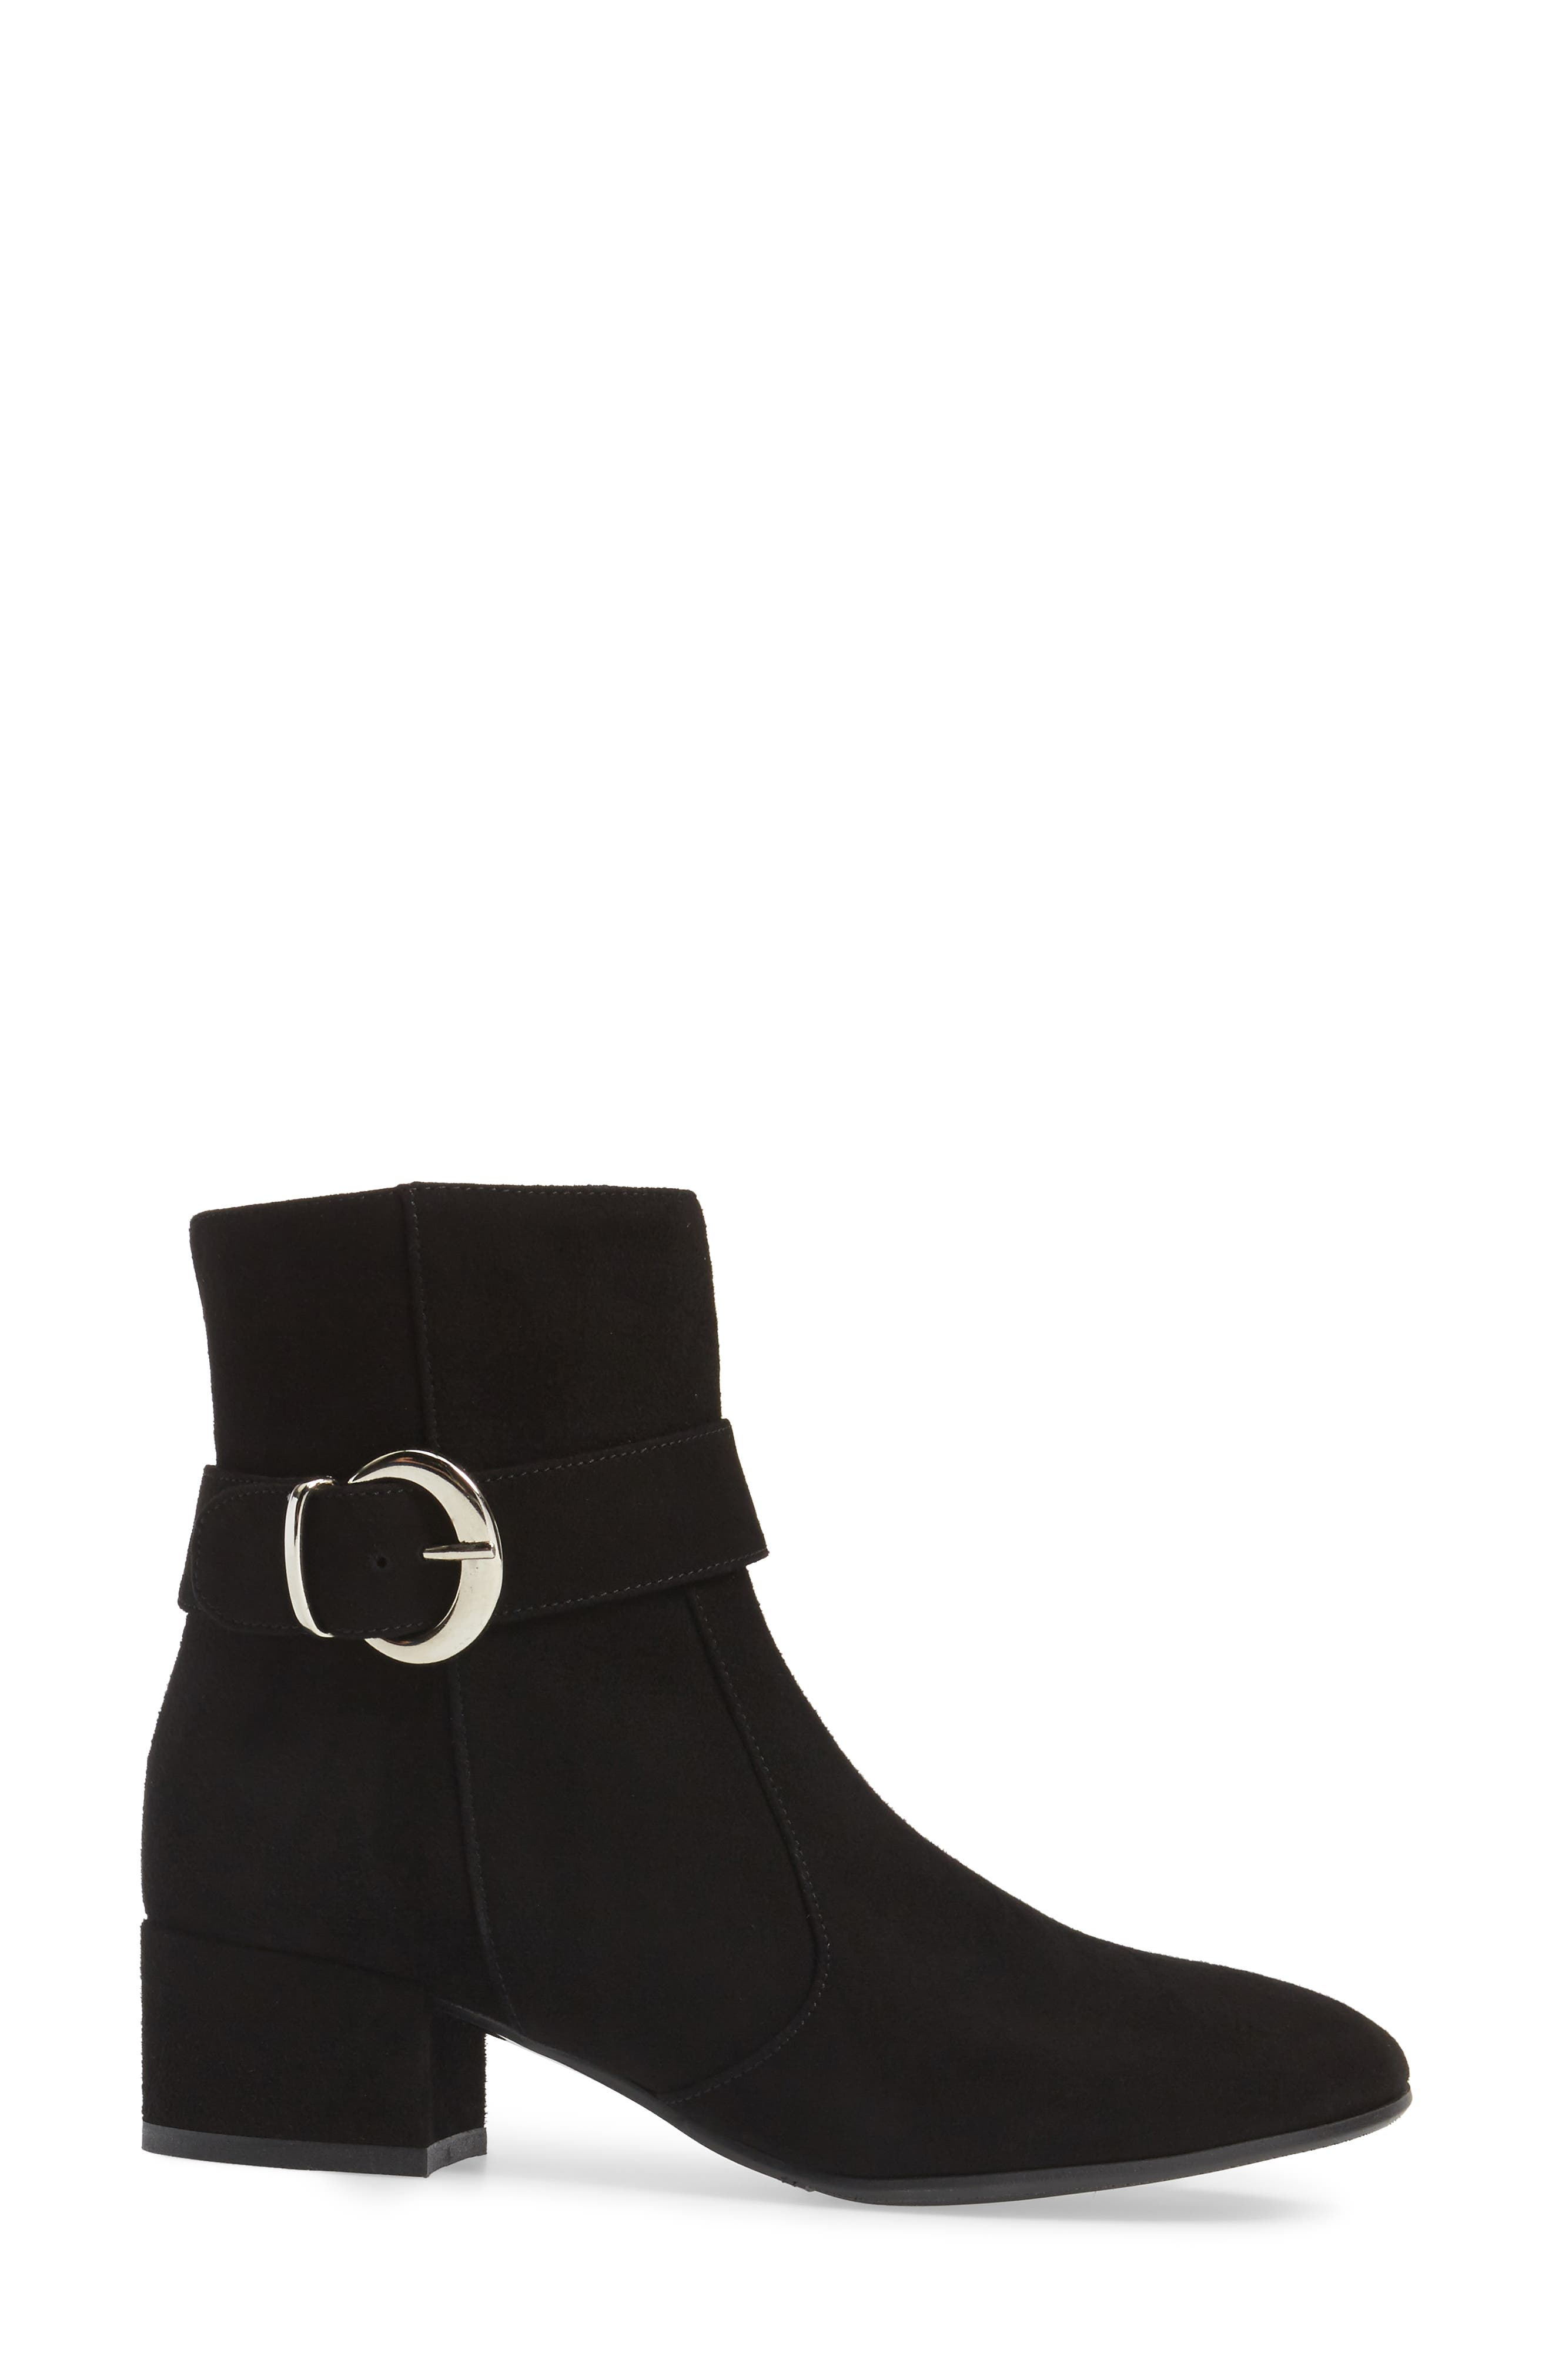 Maddie Buckle Strap Bootie,                             Alternate thumbnail 3, color,                             001